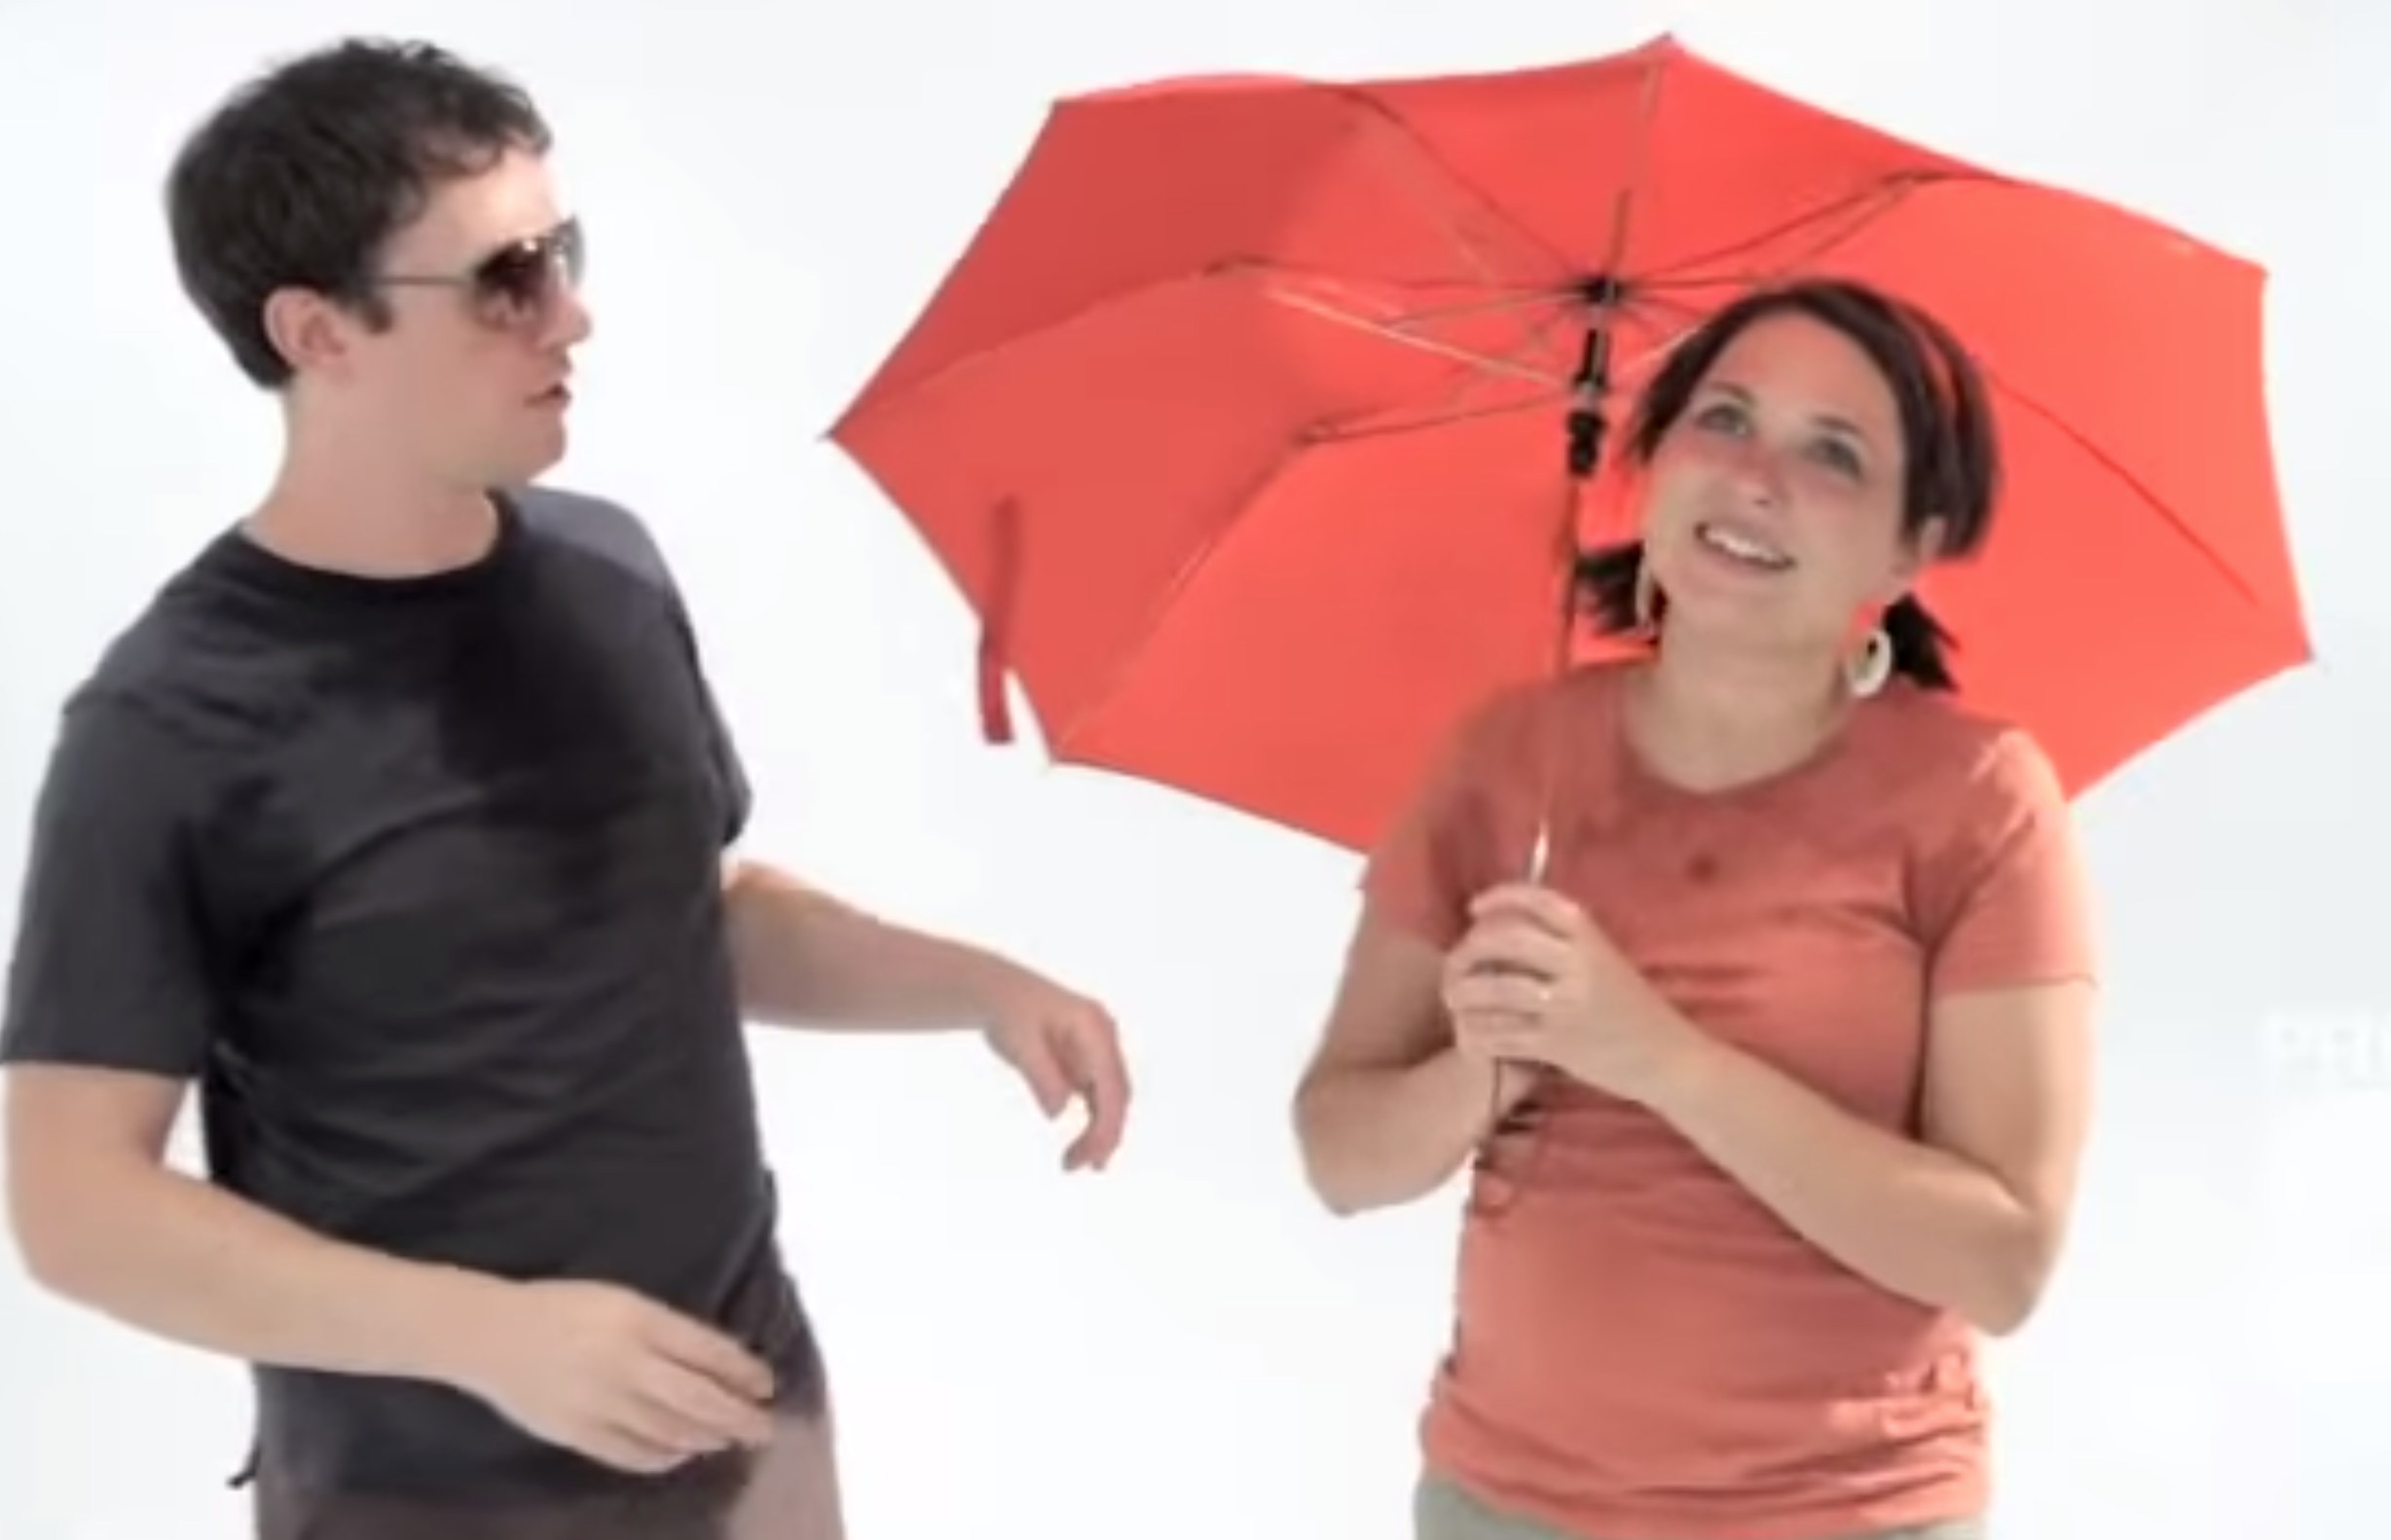 Blind Date has a new set and people aren't quite sure about it